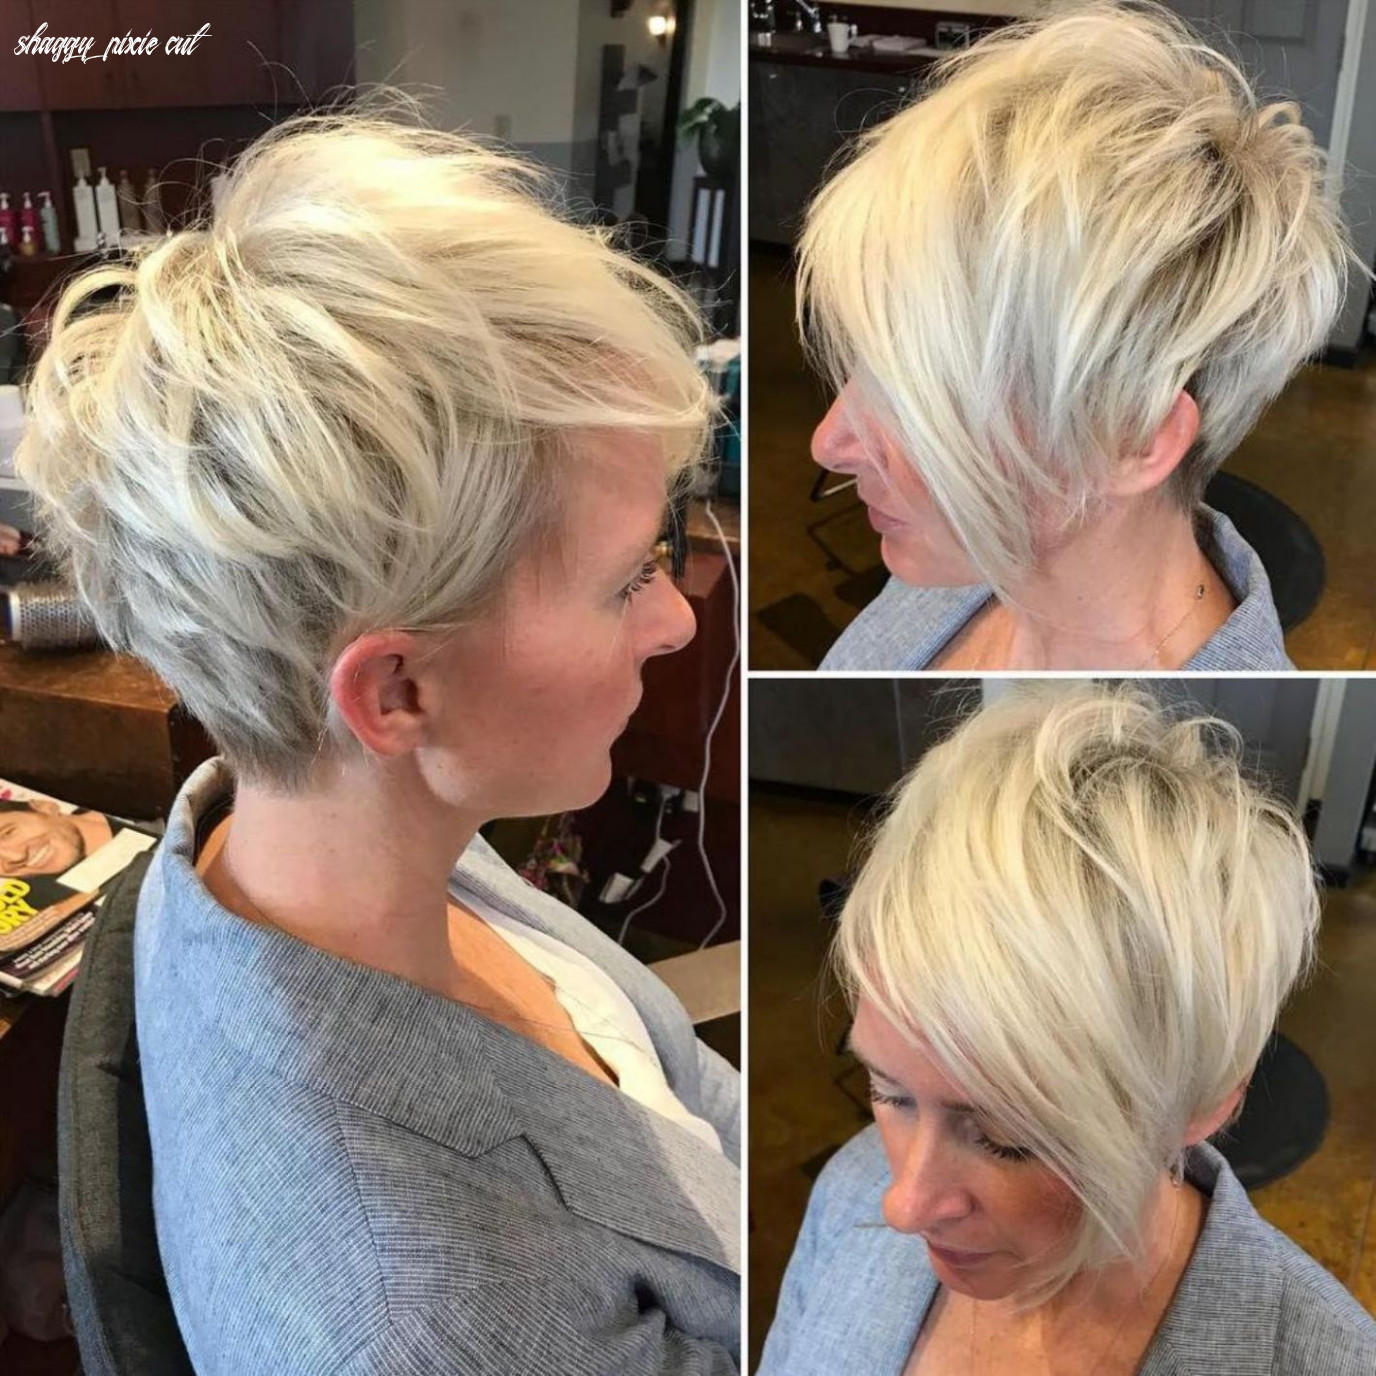 Pixie haircuts with bangs 12 terrific tapers   long pixie